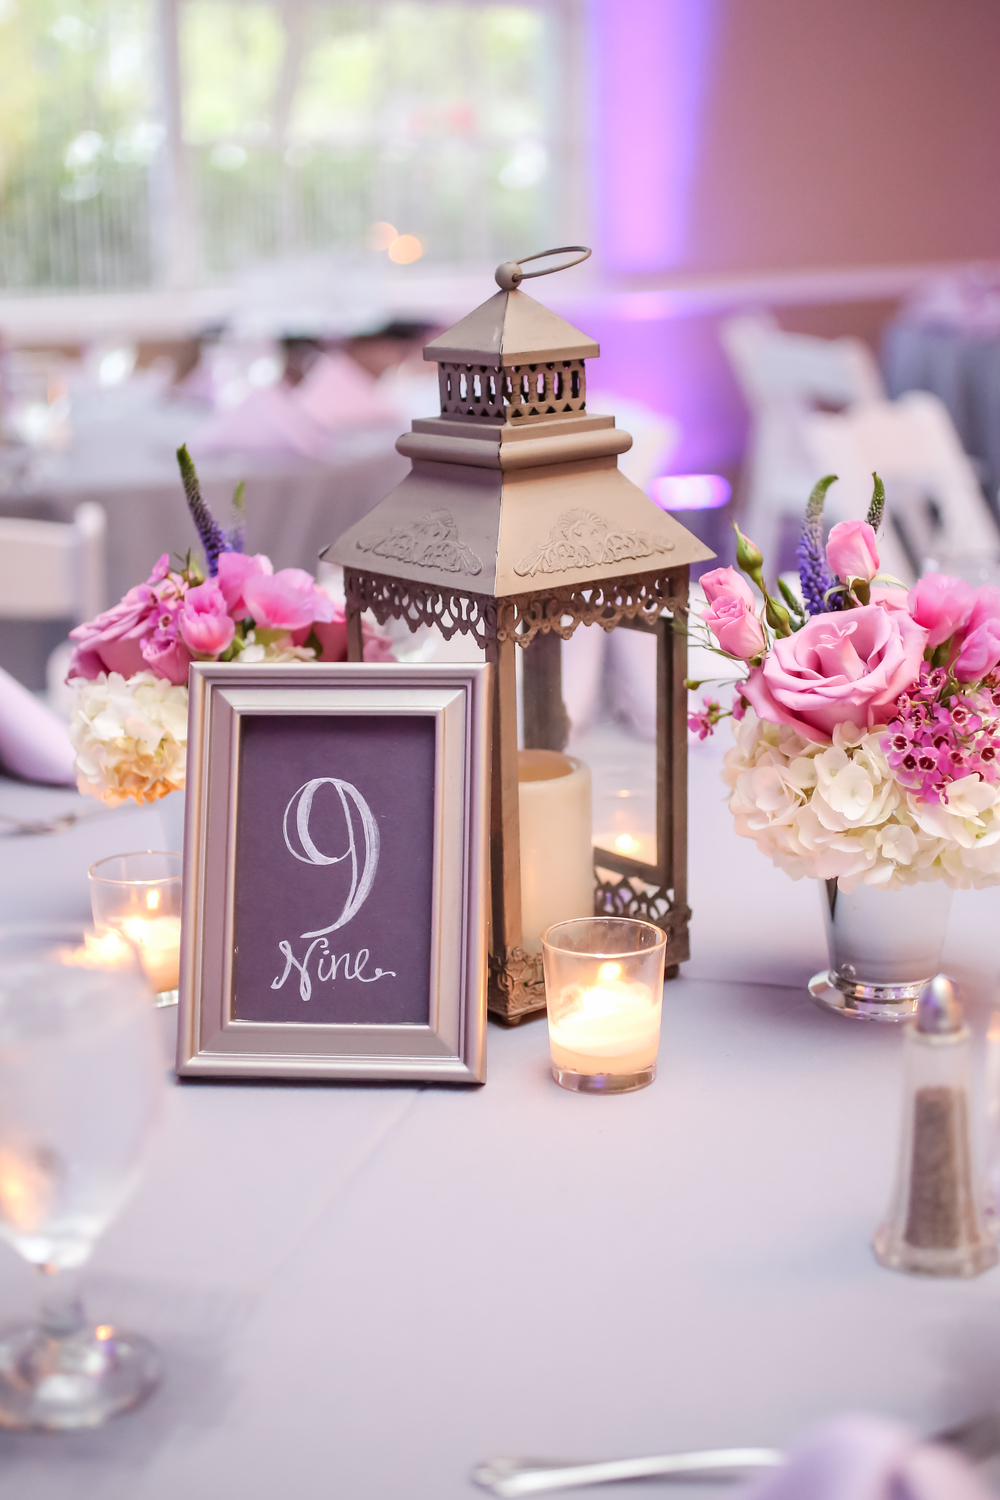 Some tables featured centerpieces of silver lanterns with julep cups of flowers and chalk table numbers.